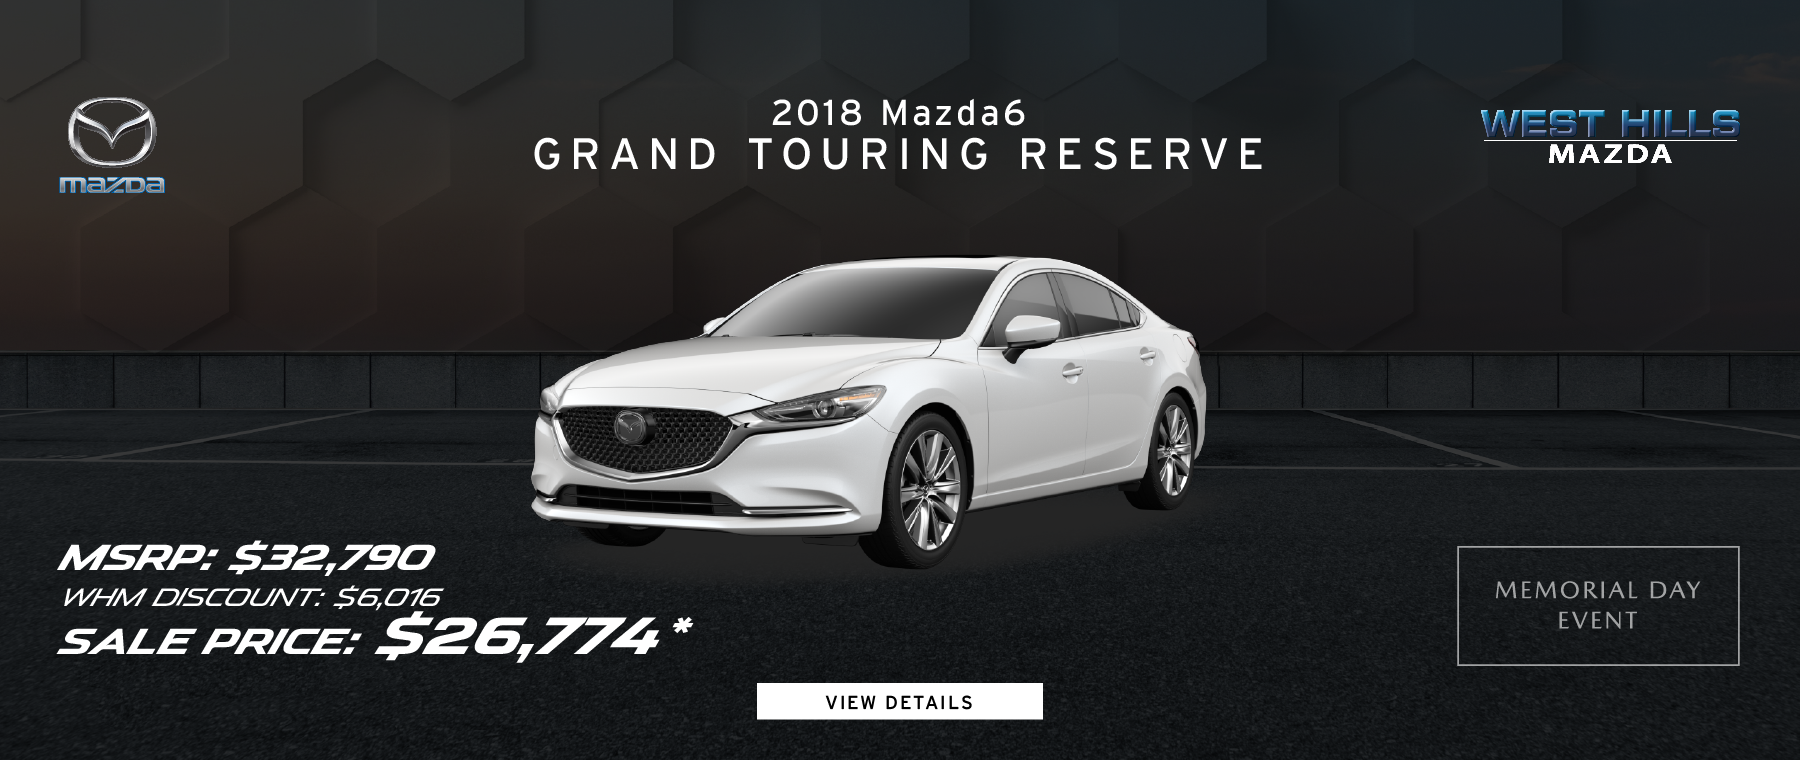 2018 Mazda6 Grand Touring Reserve 12% OFF of MSRP*